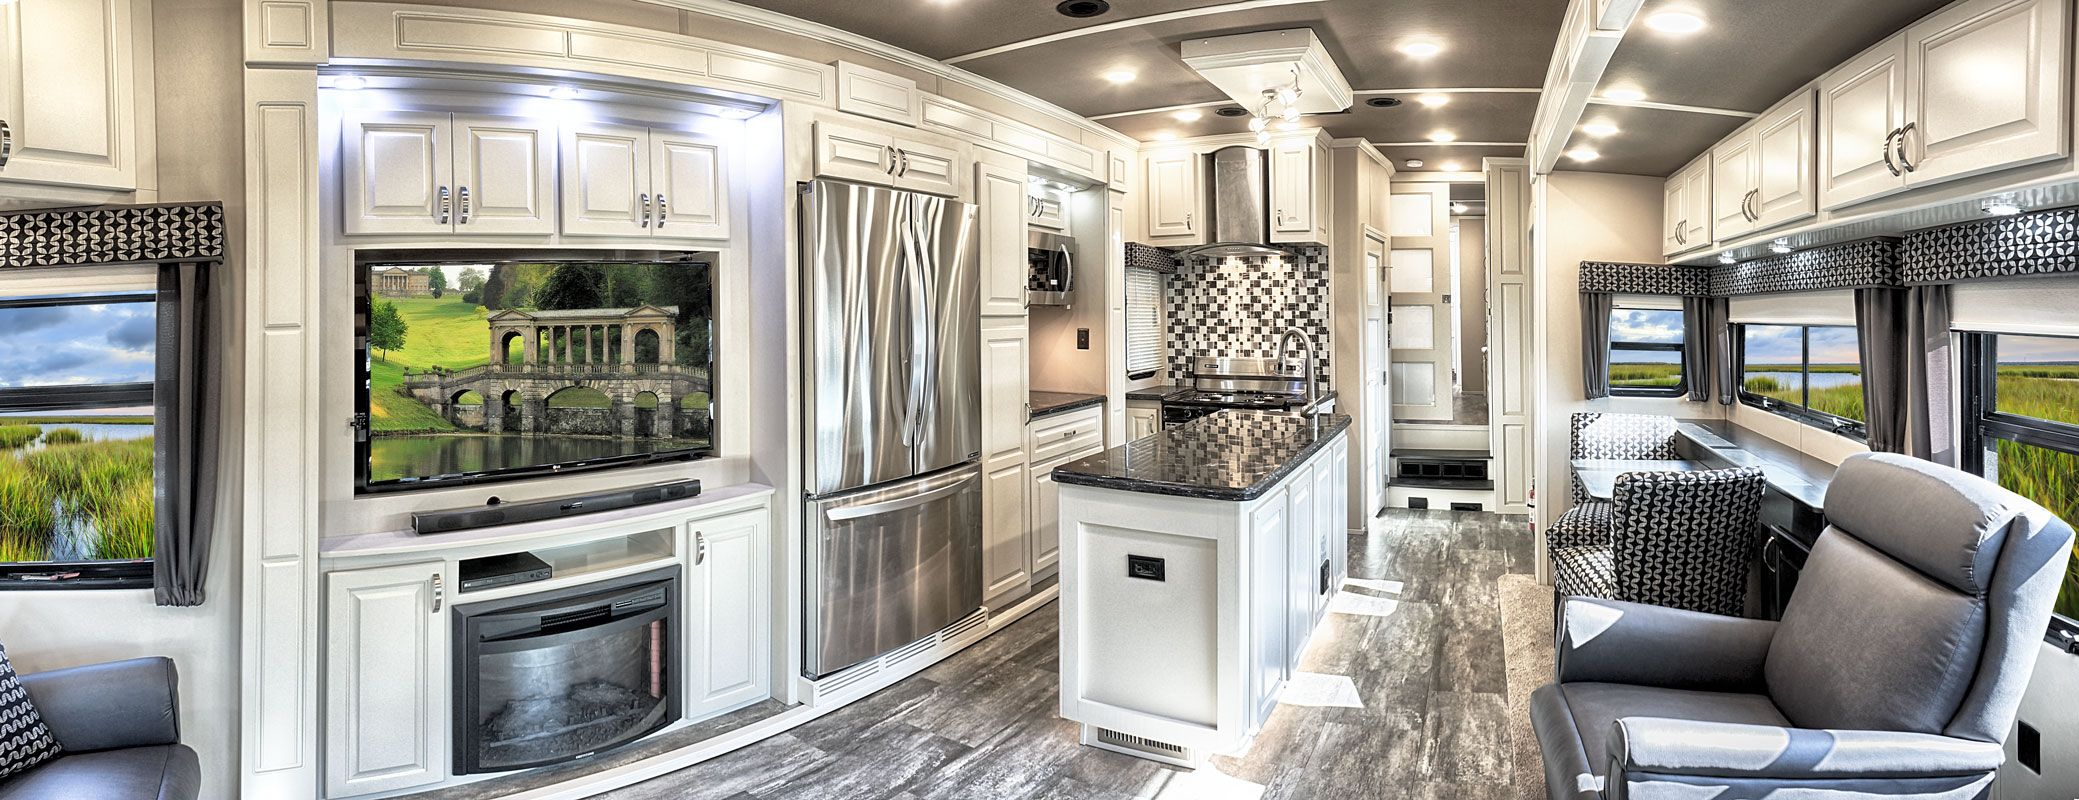 images/Luxe/slides/luxury_fifth_wheel_kitchen_pano.jpg